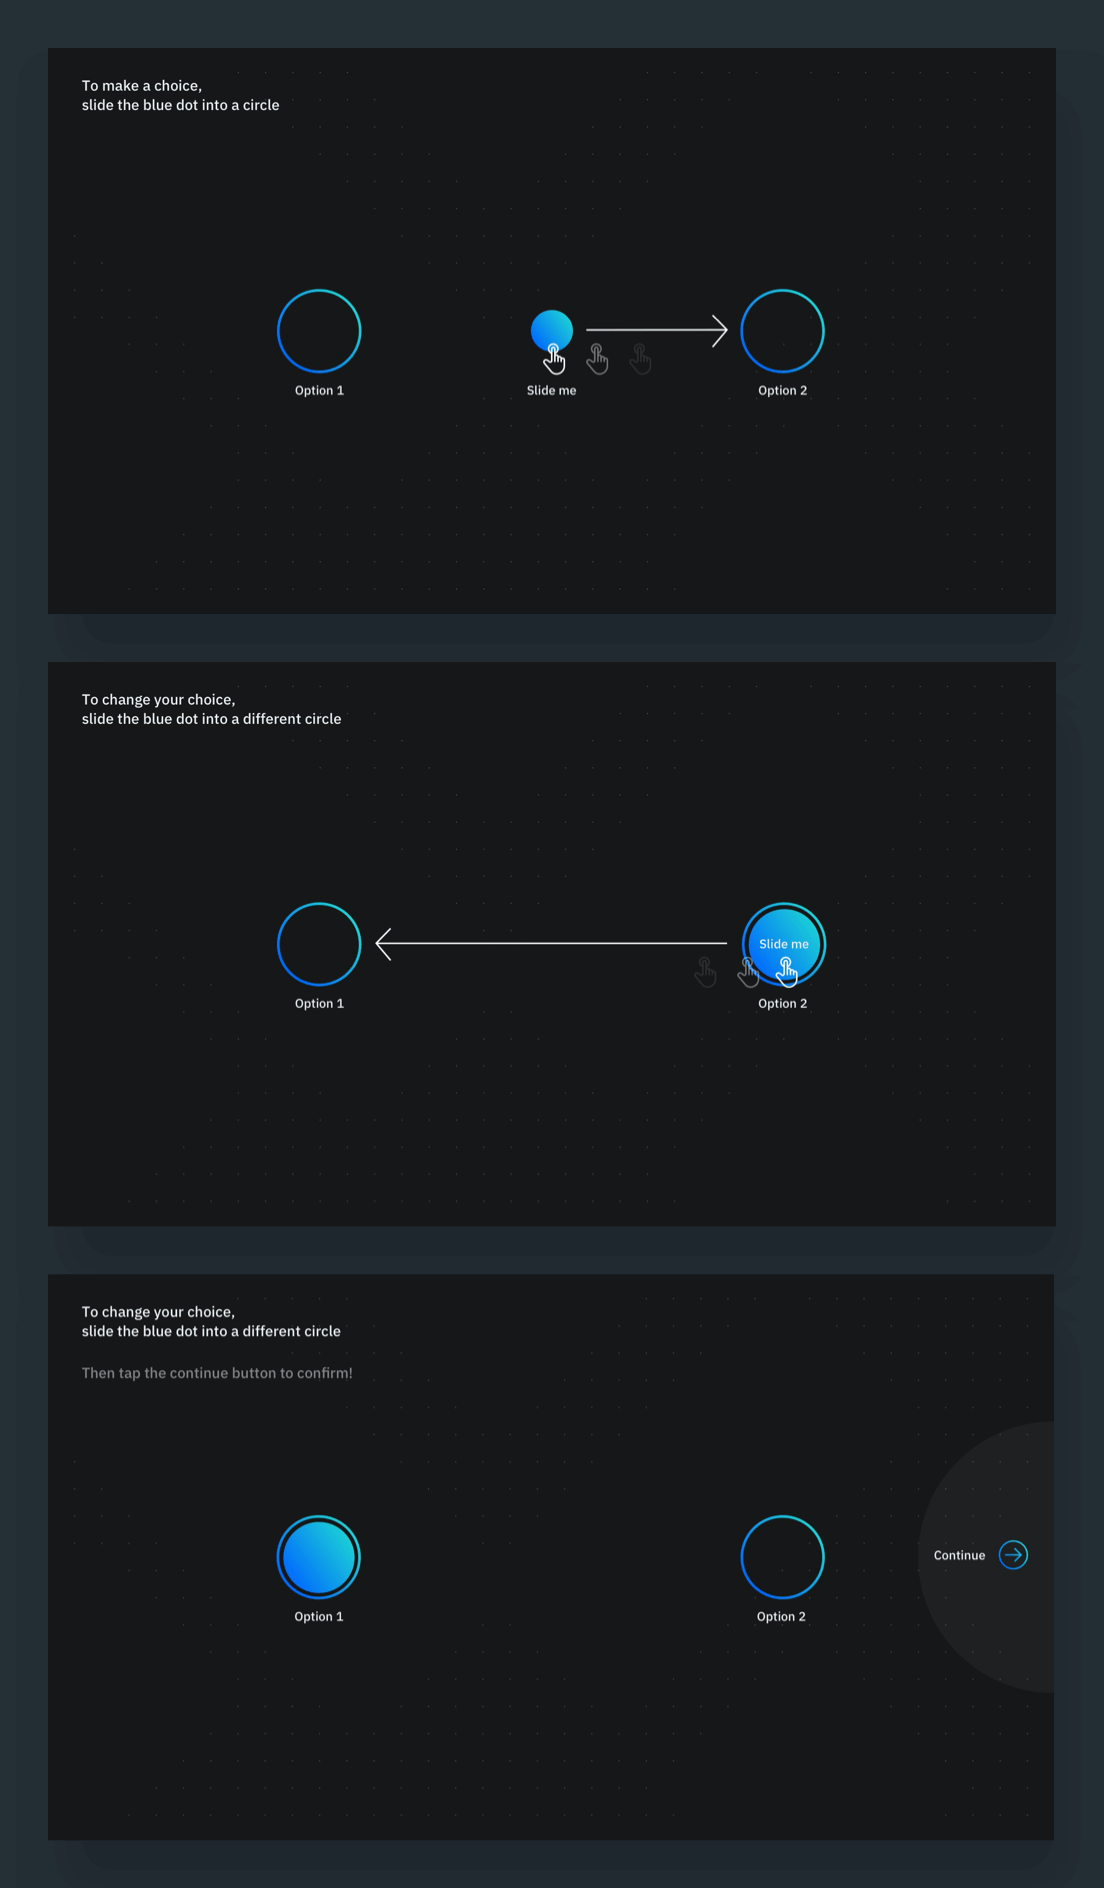 The first set of three onboarding screens